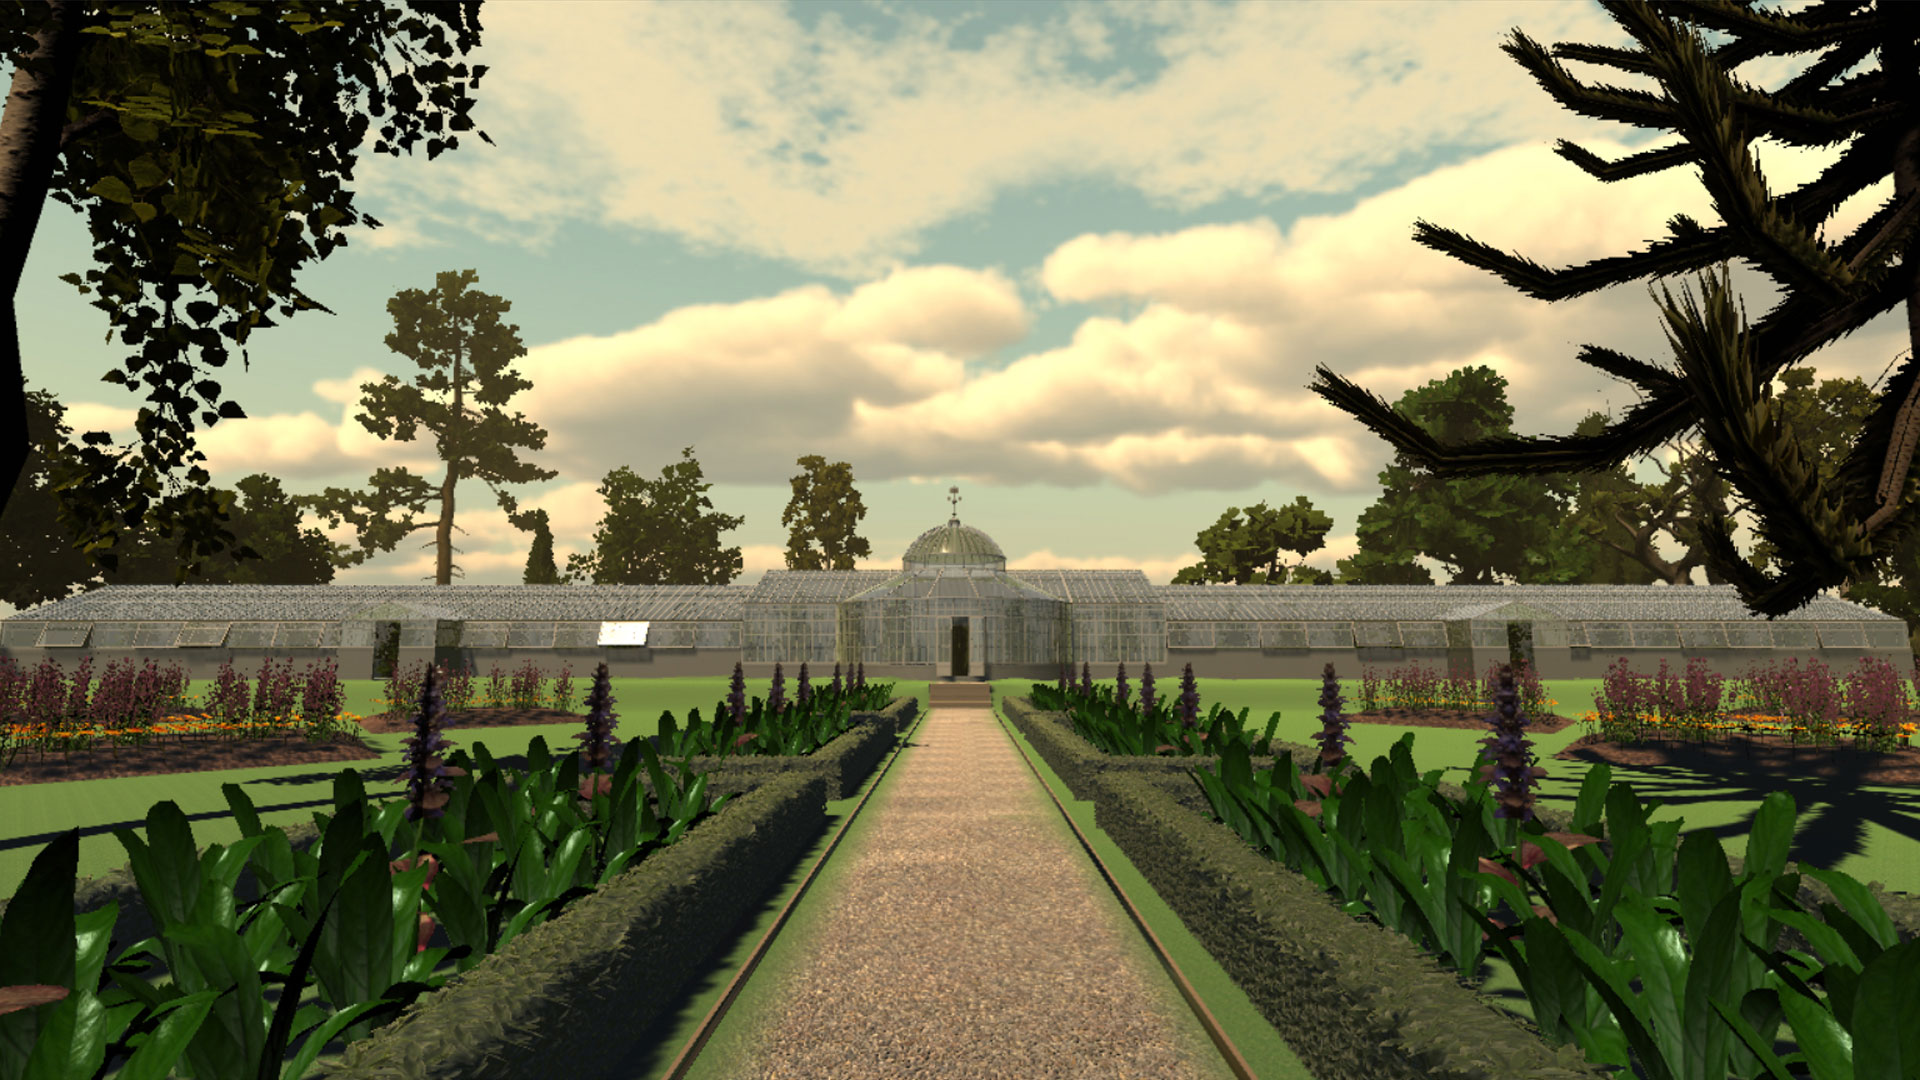 Image shows animation of long walkway surrounded by trees, with a greenhouse at the end.